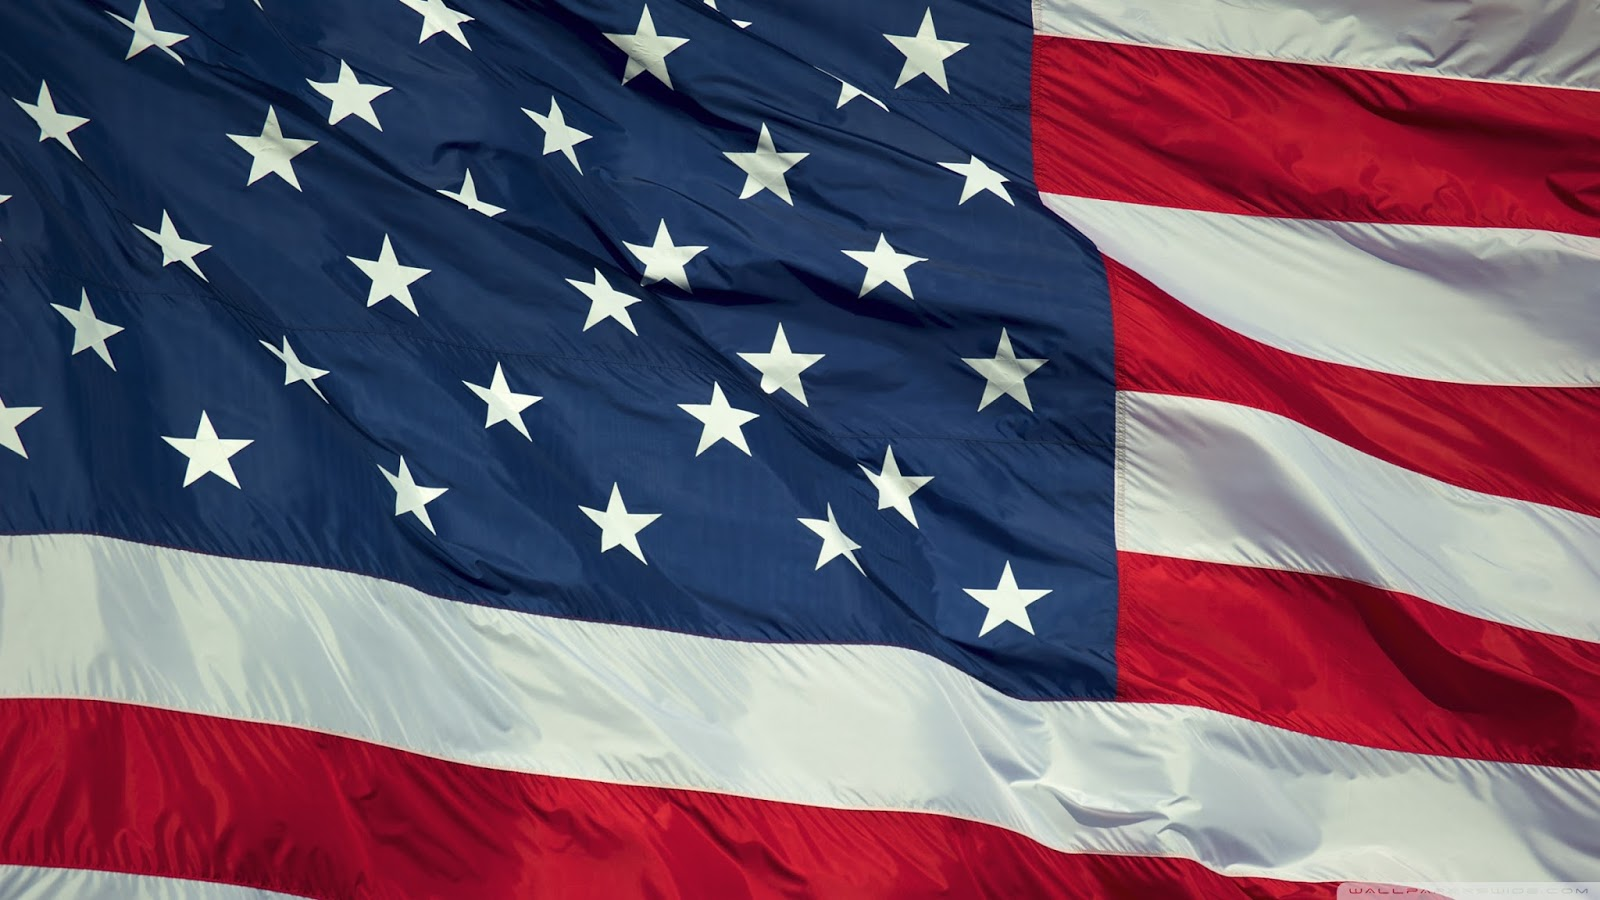 american flag hd wallpaper american flag with sunset hd wallpaper 1600x900